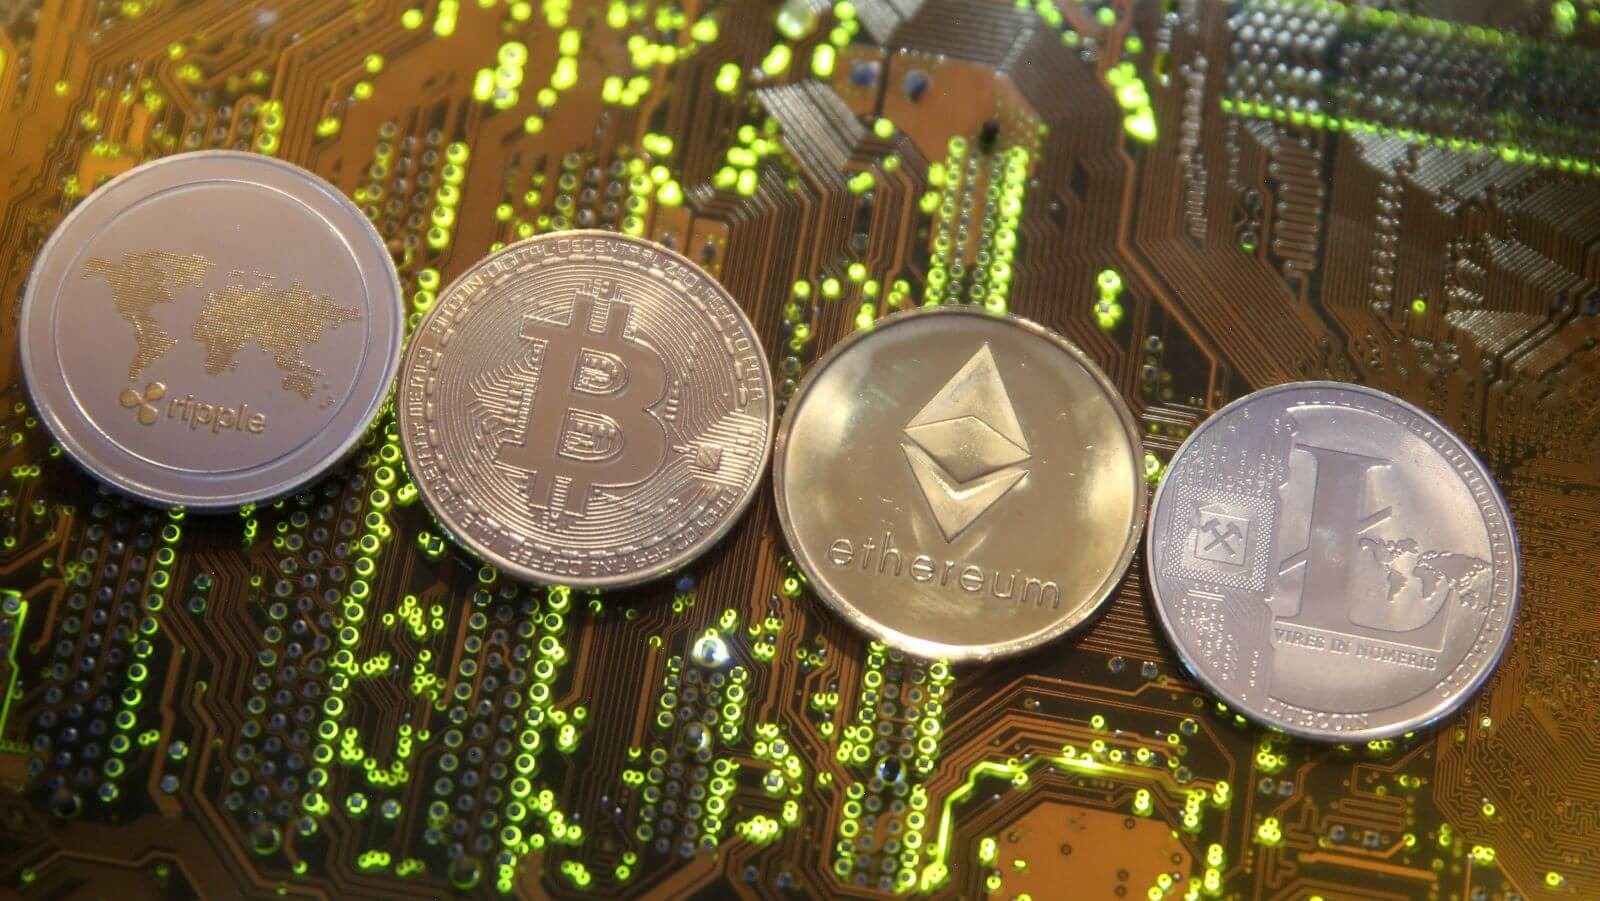 CipherTrace says $3.1 billion may have been stolen at cryptocurrency exchanges in 2019